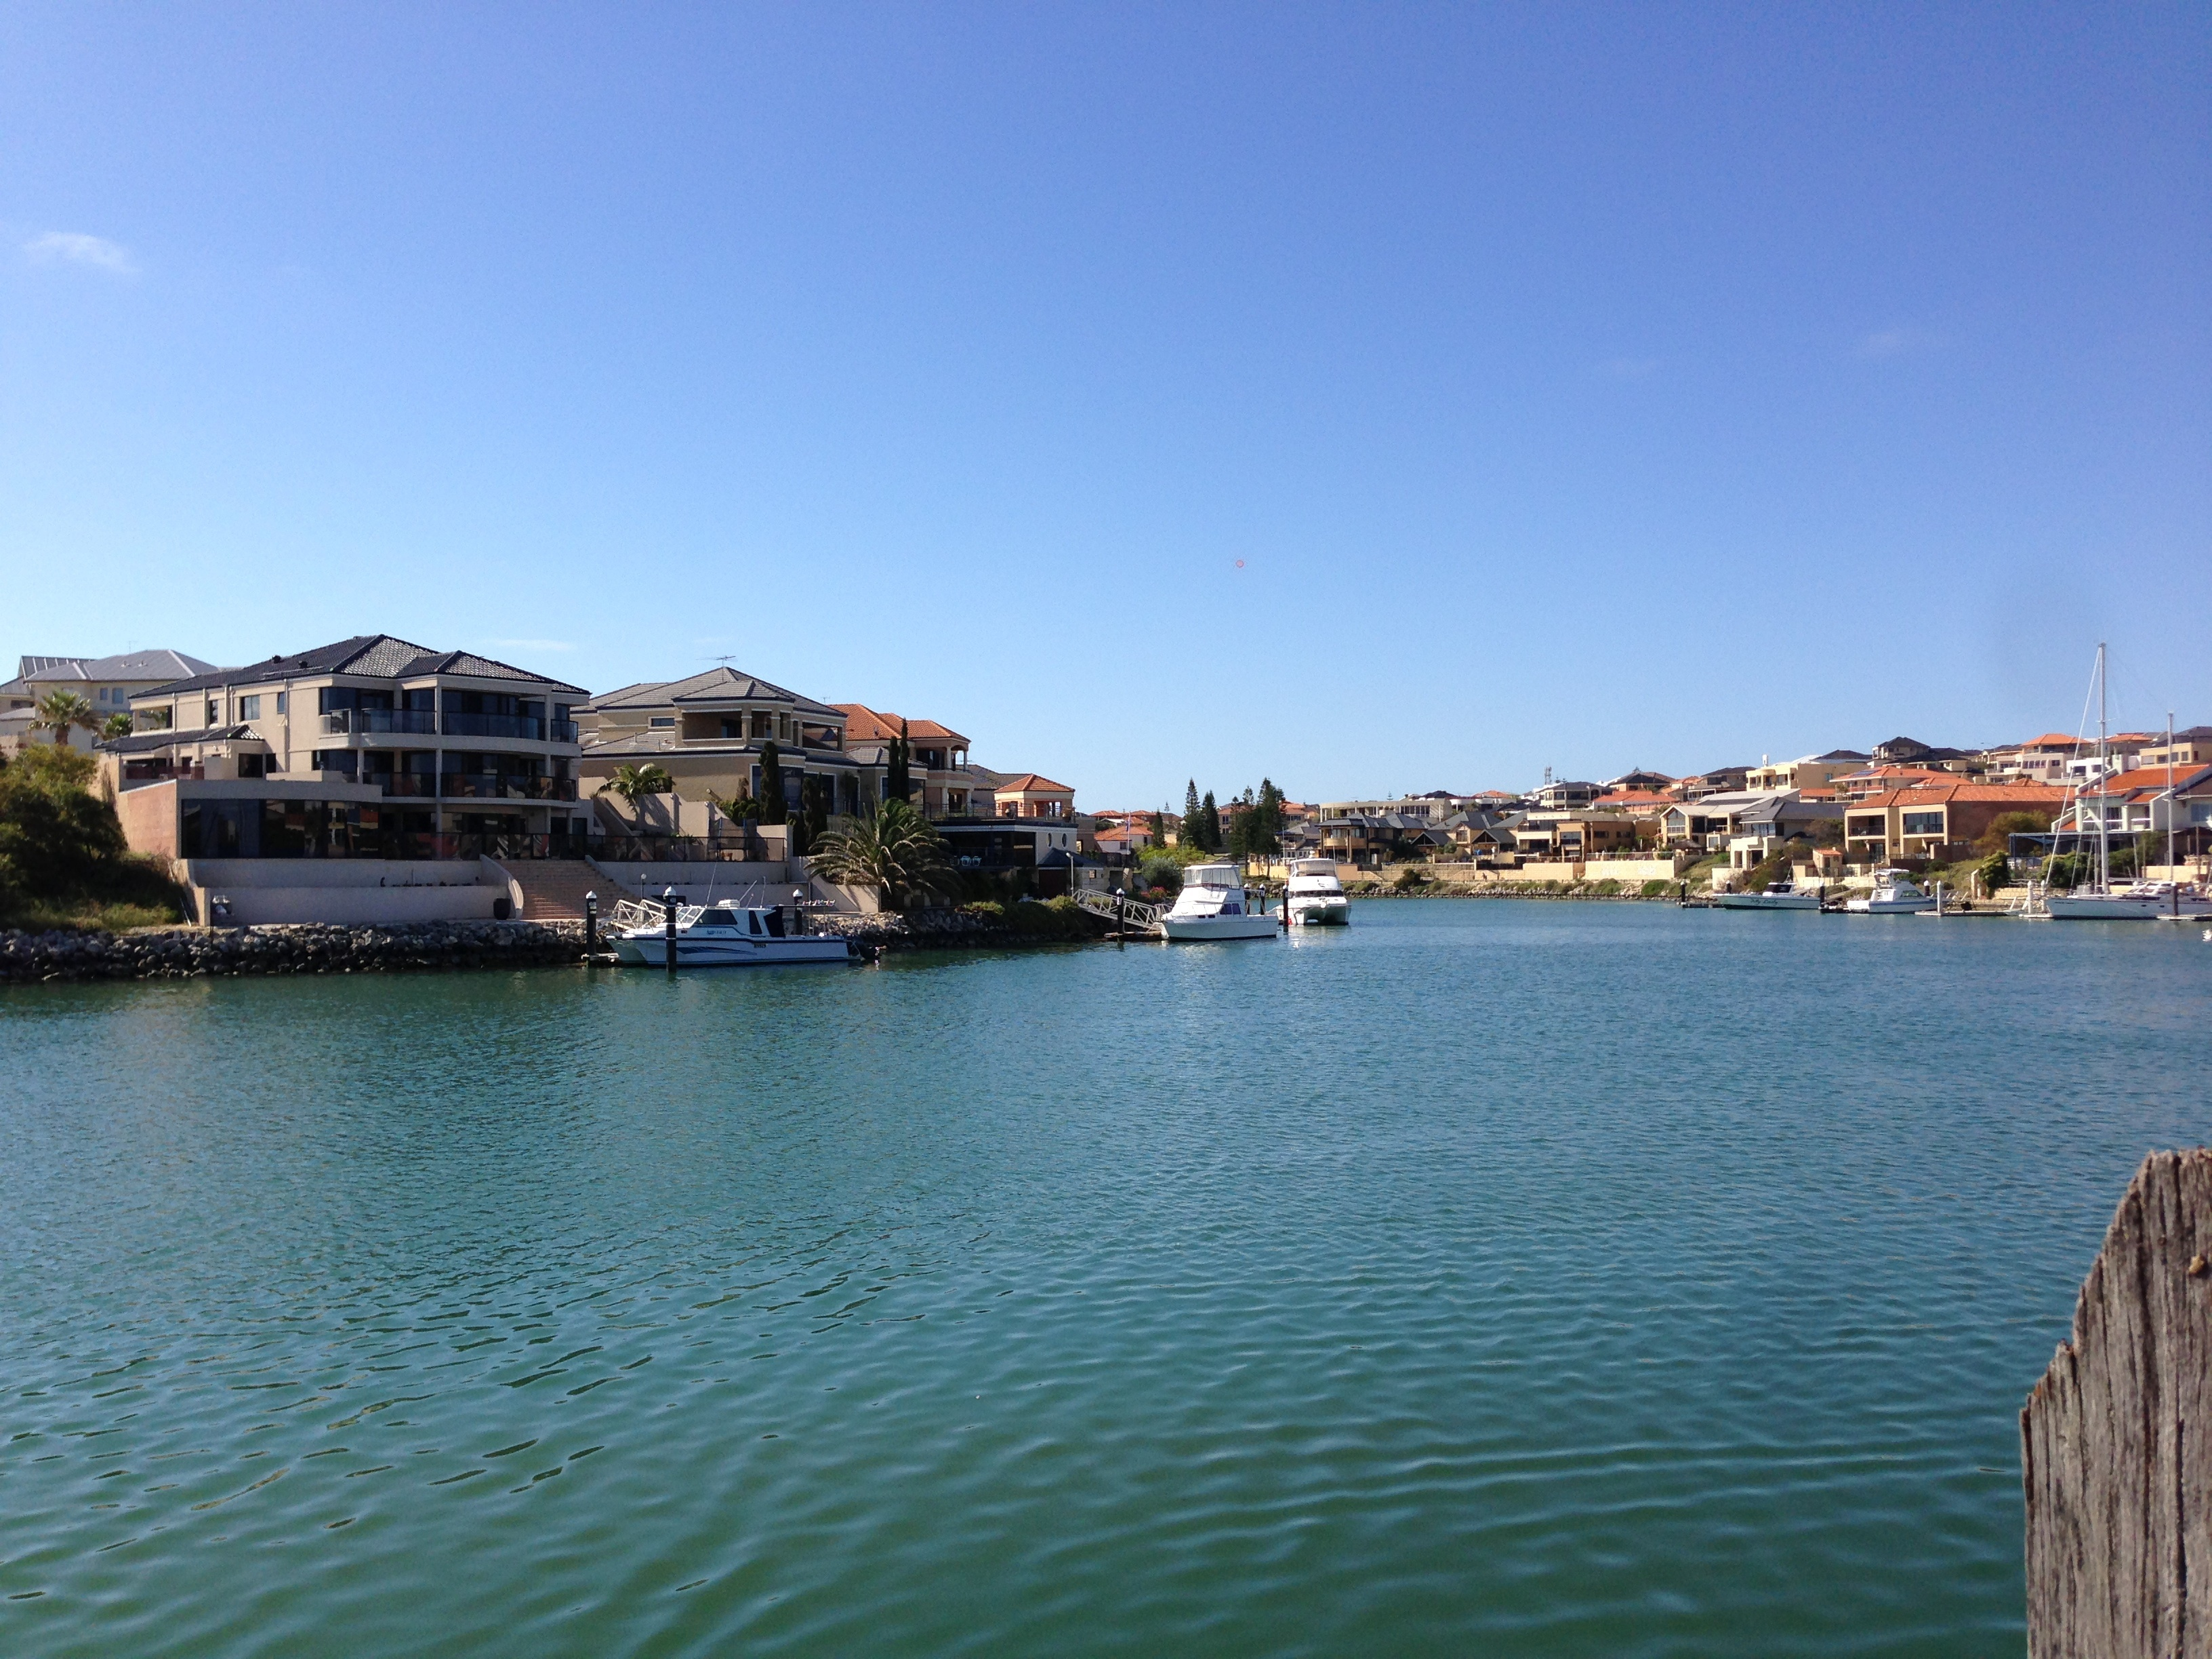 Waterfront Cafe And Restaurant Mindarie